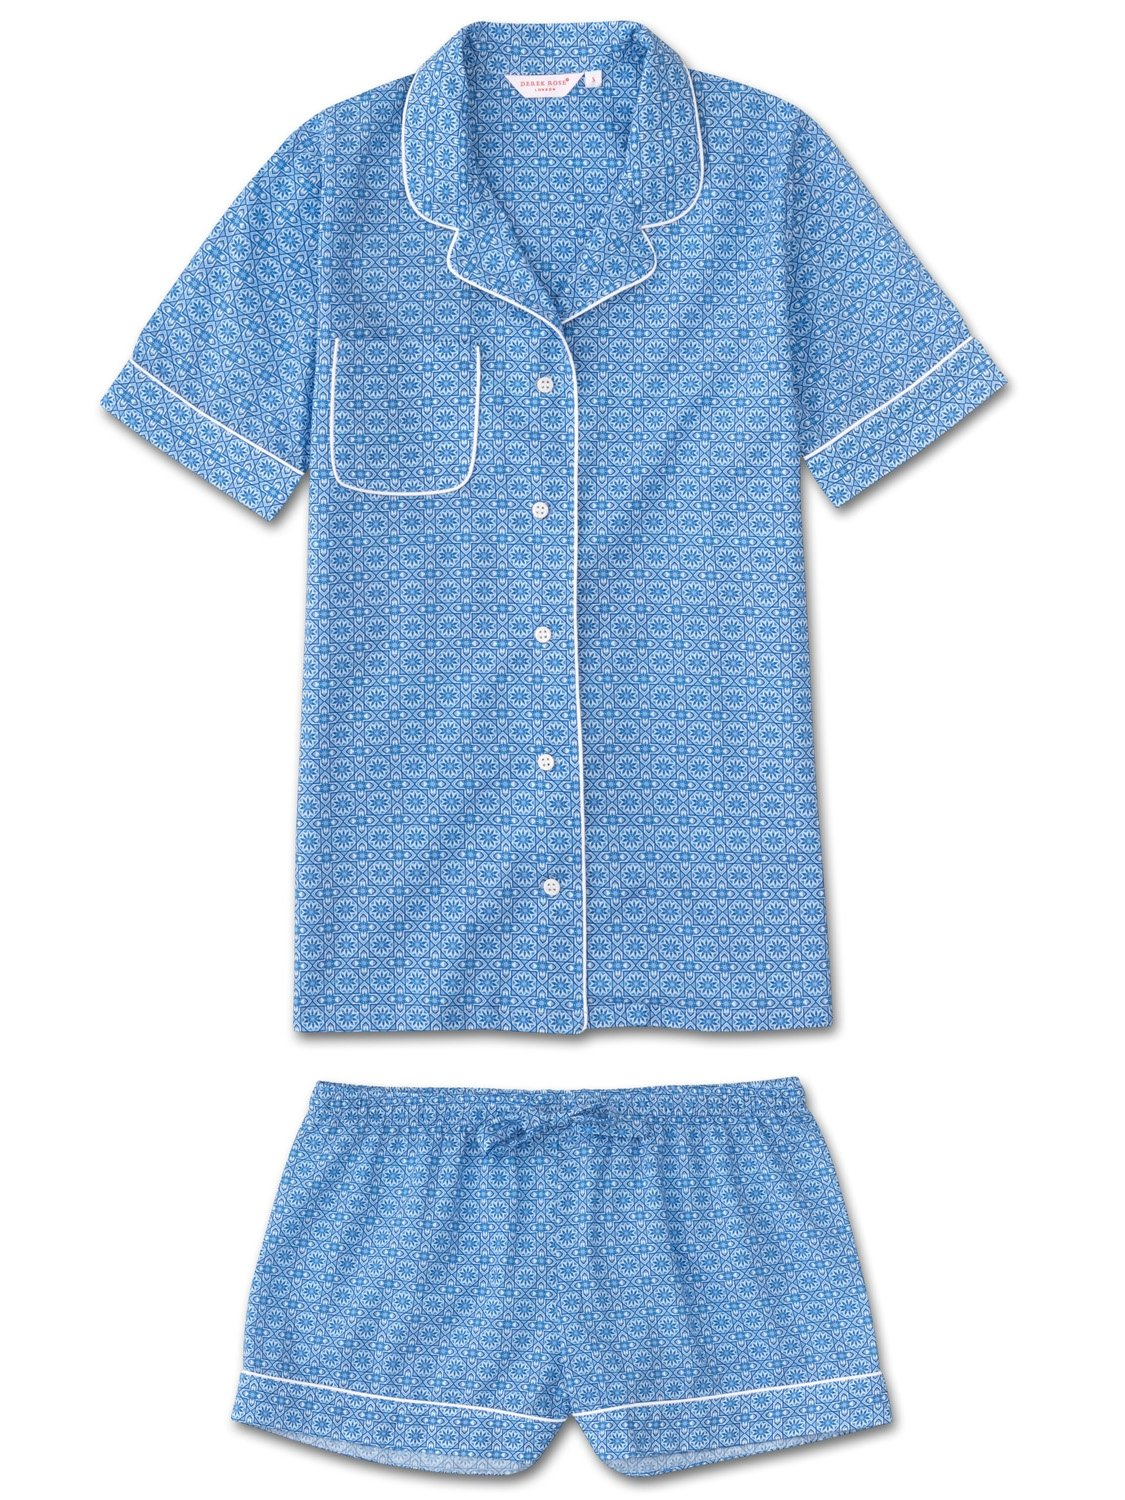 Women's Shortie Pyjamas Ledbury 5 Cotton Batiste Blue